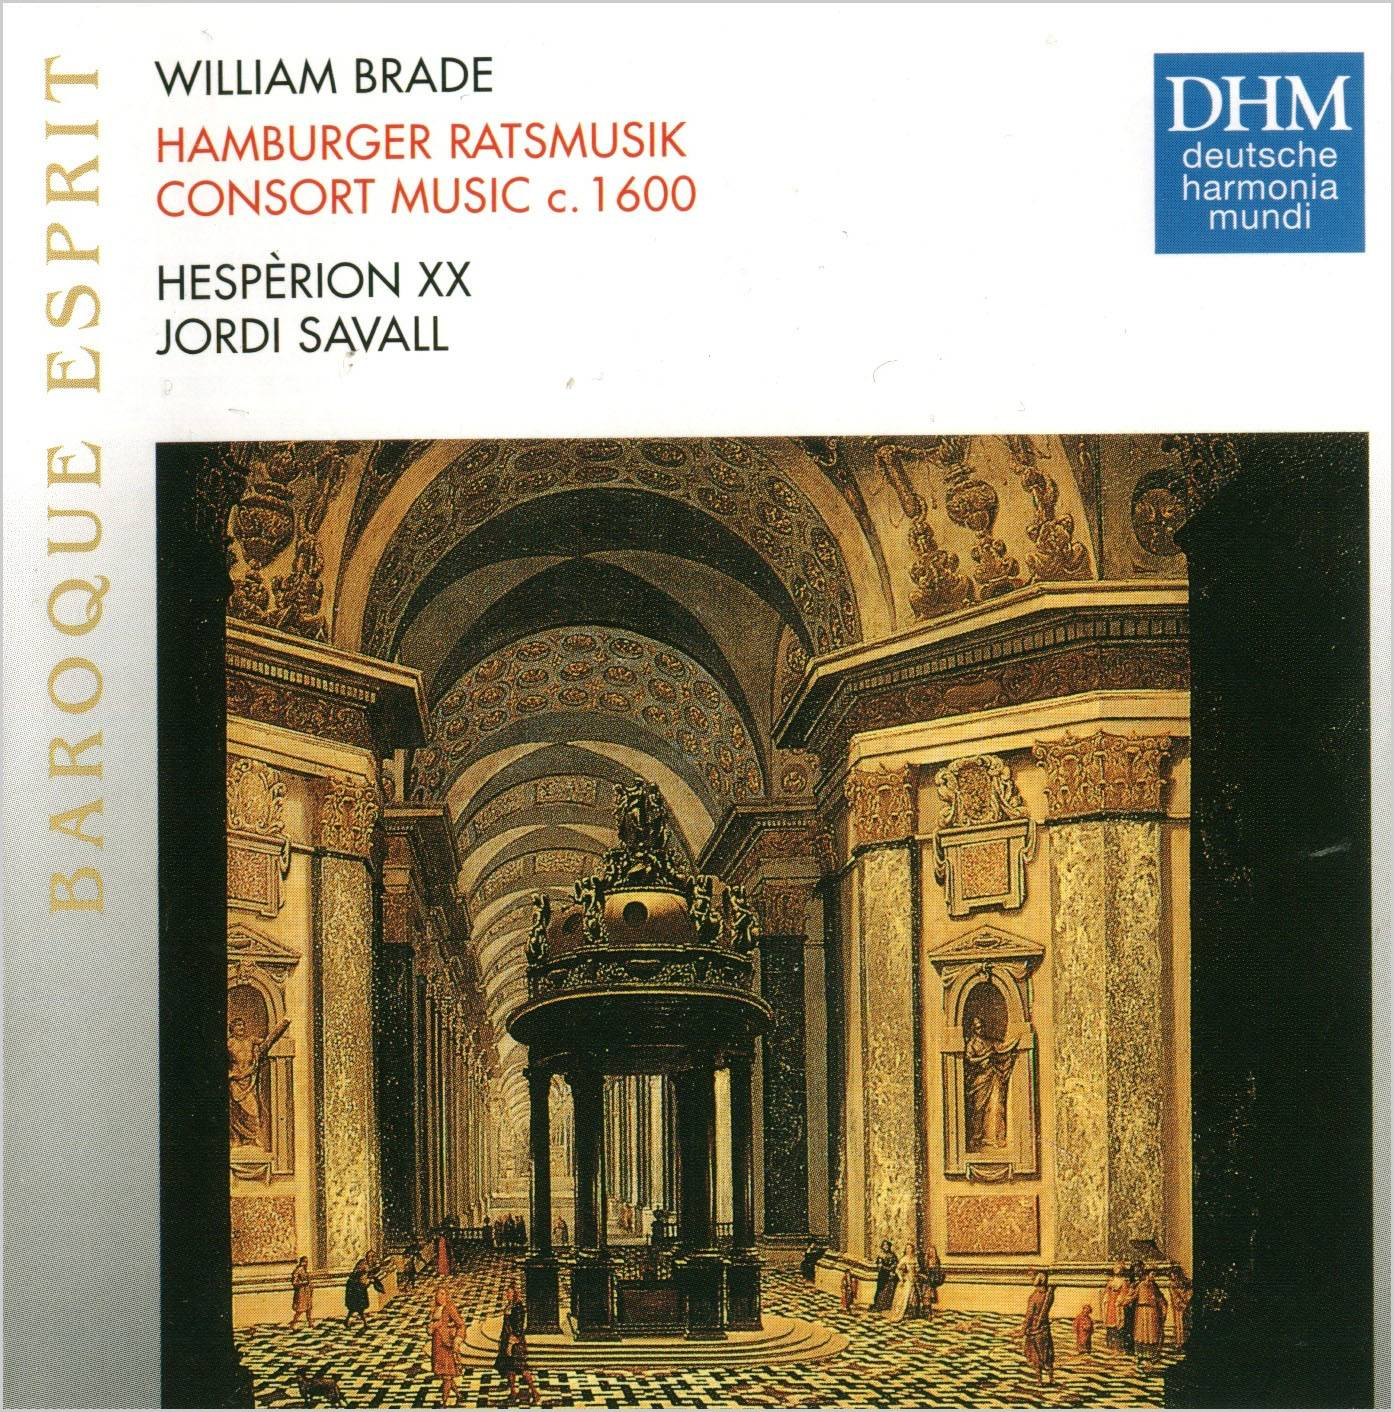 Hesperion XX, Jordi Savall - William Brade: Hamburger Ratsmusik - Consort Music C. 1600 (1998) [Re-Up]